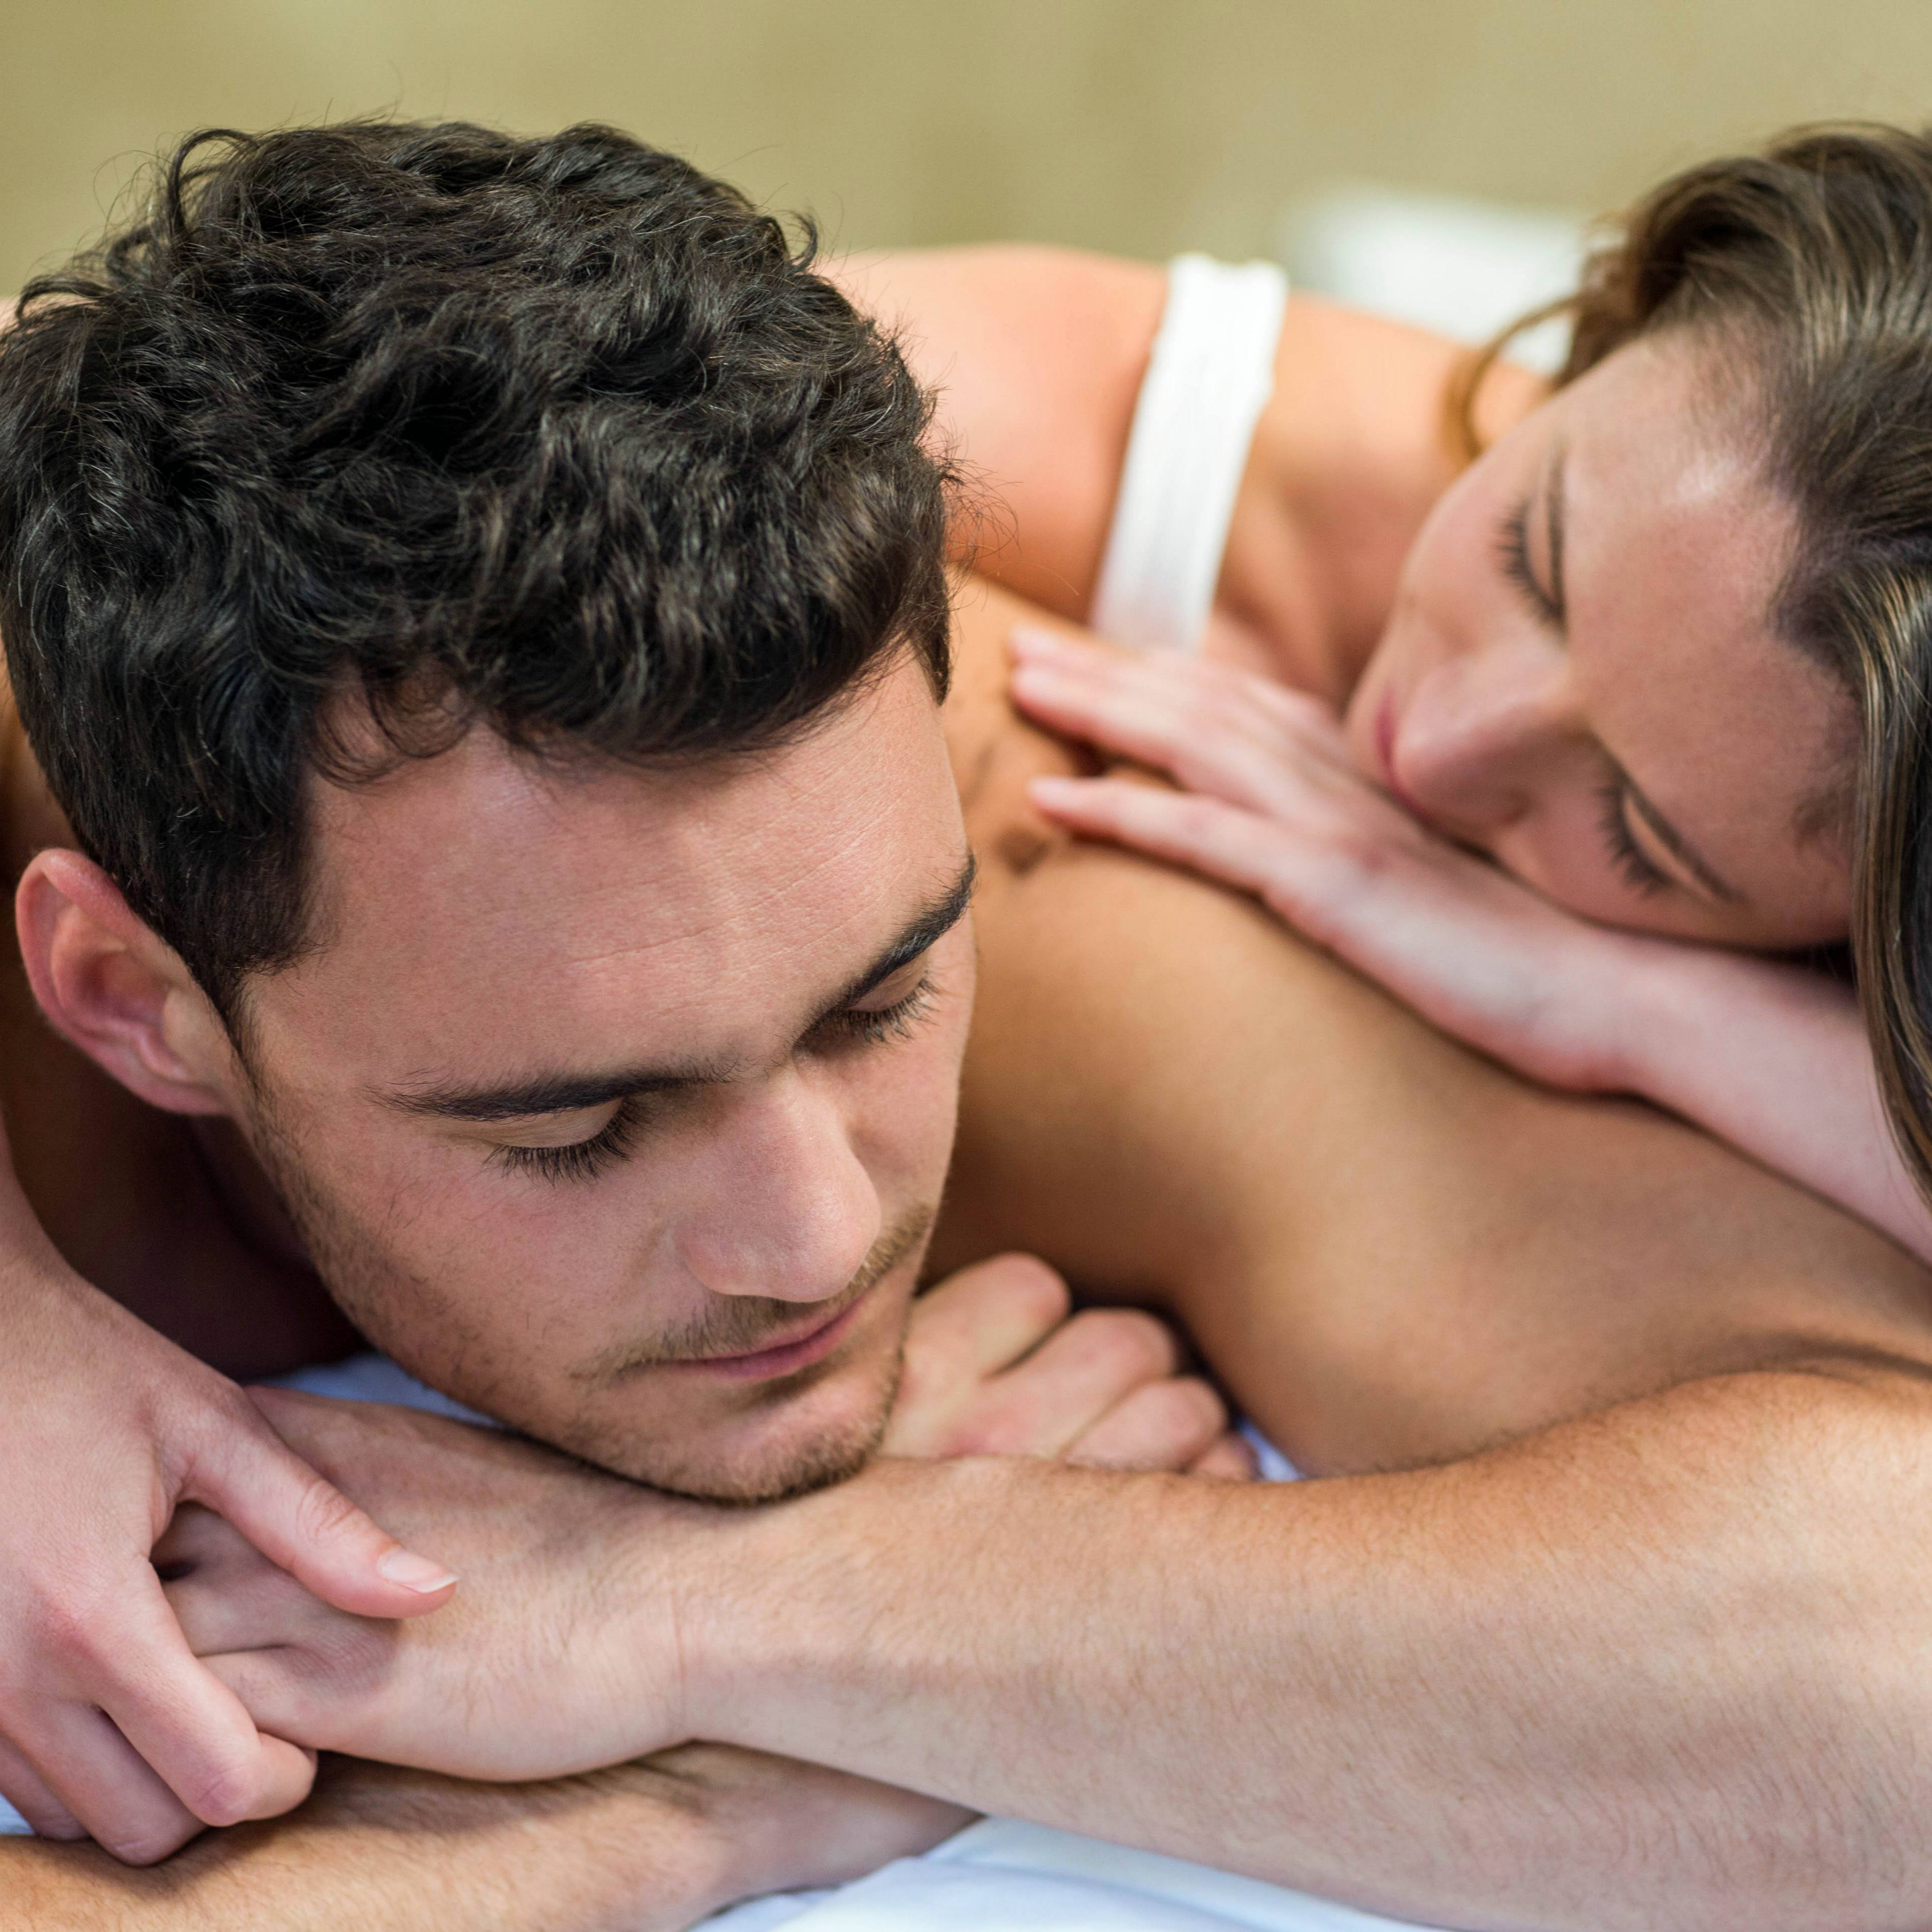 a young couple is cuddling in bed